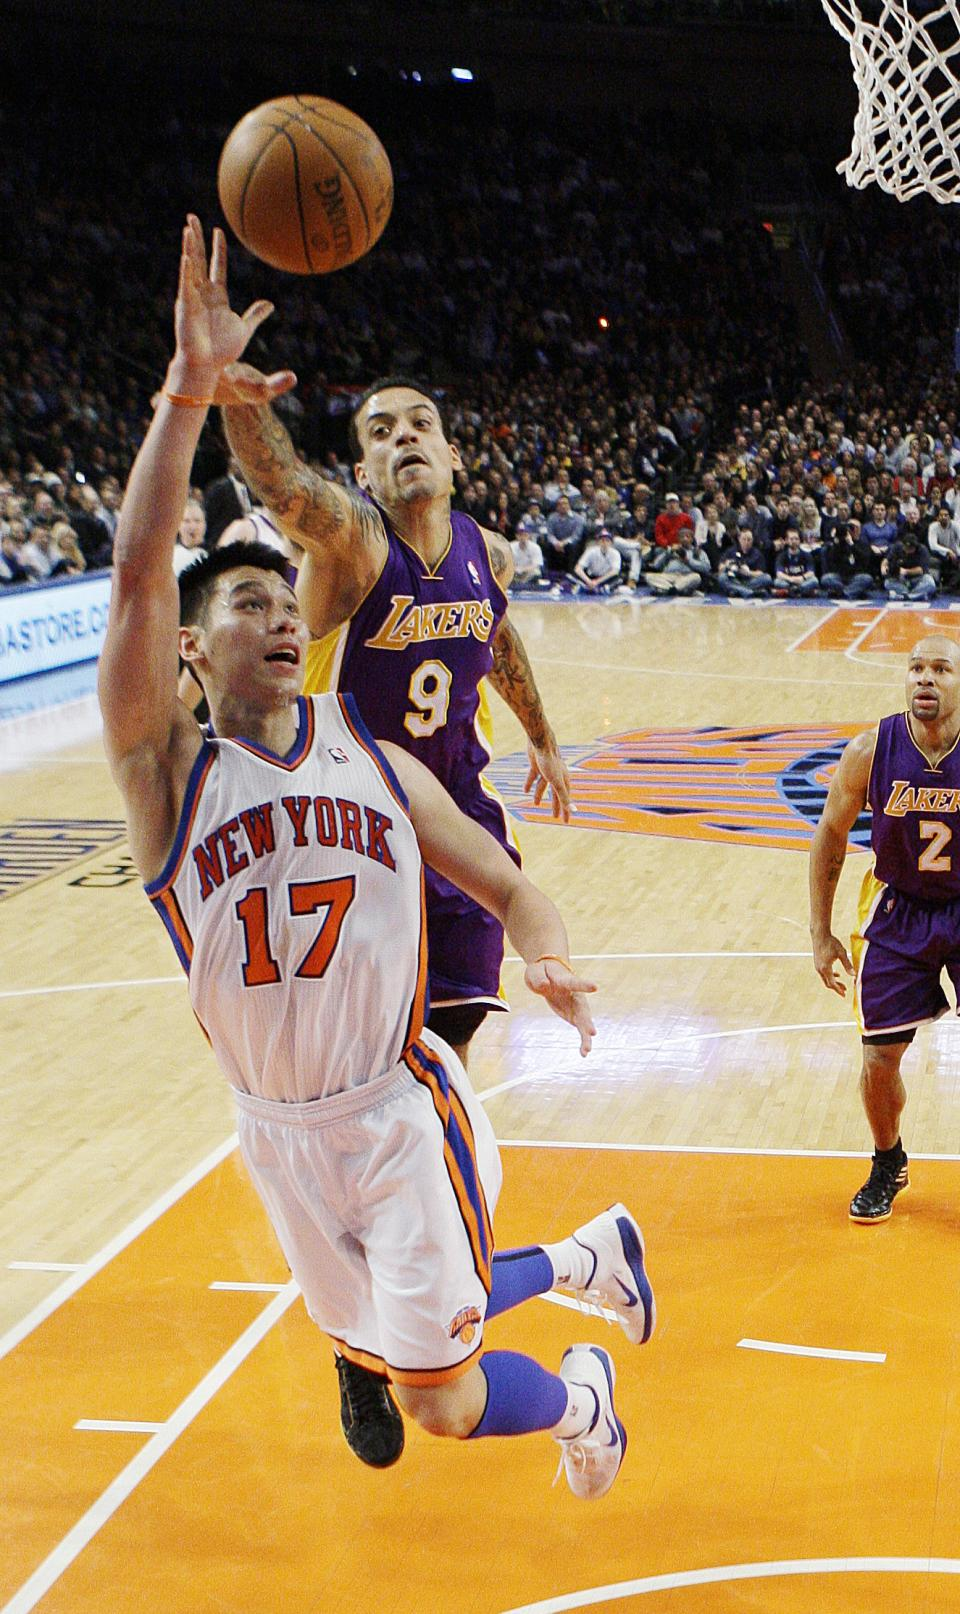 New York Knicks' Jeremy Lin (17) drives past Los Angeles Lakers' Matt Barnes (9) during the first half of an NBA basketball game, Friday, Feb. 10, 2012, in New York. (AP Photo/Frank Franklin II)